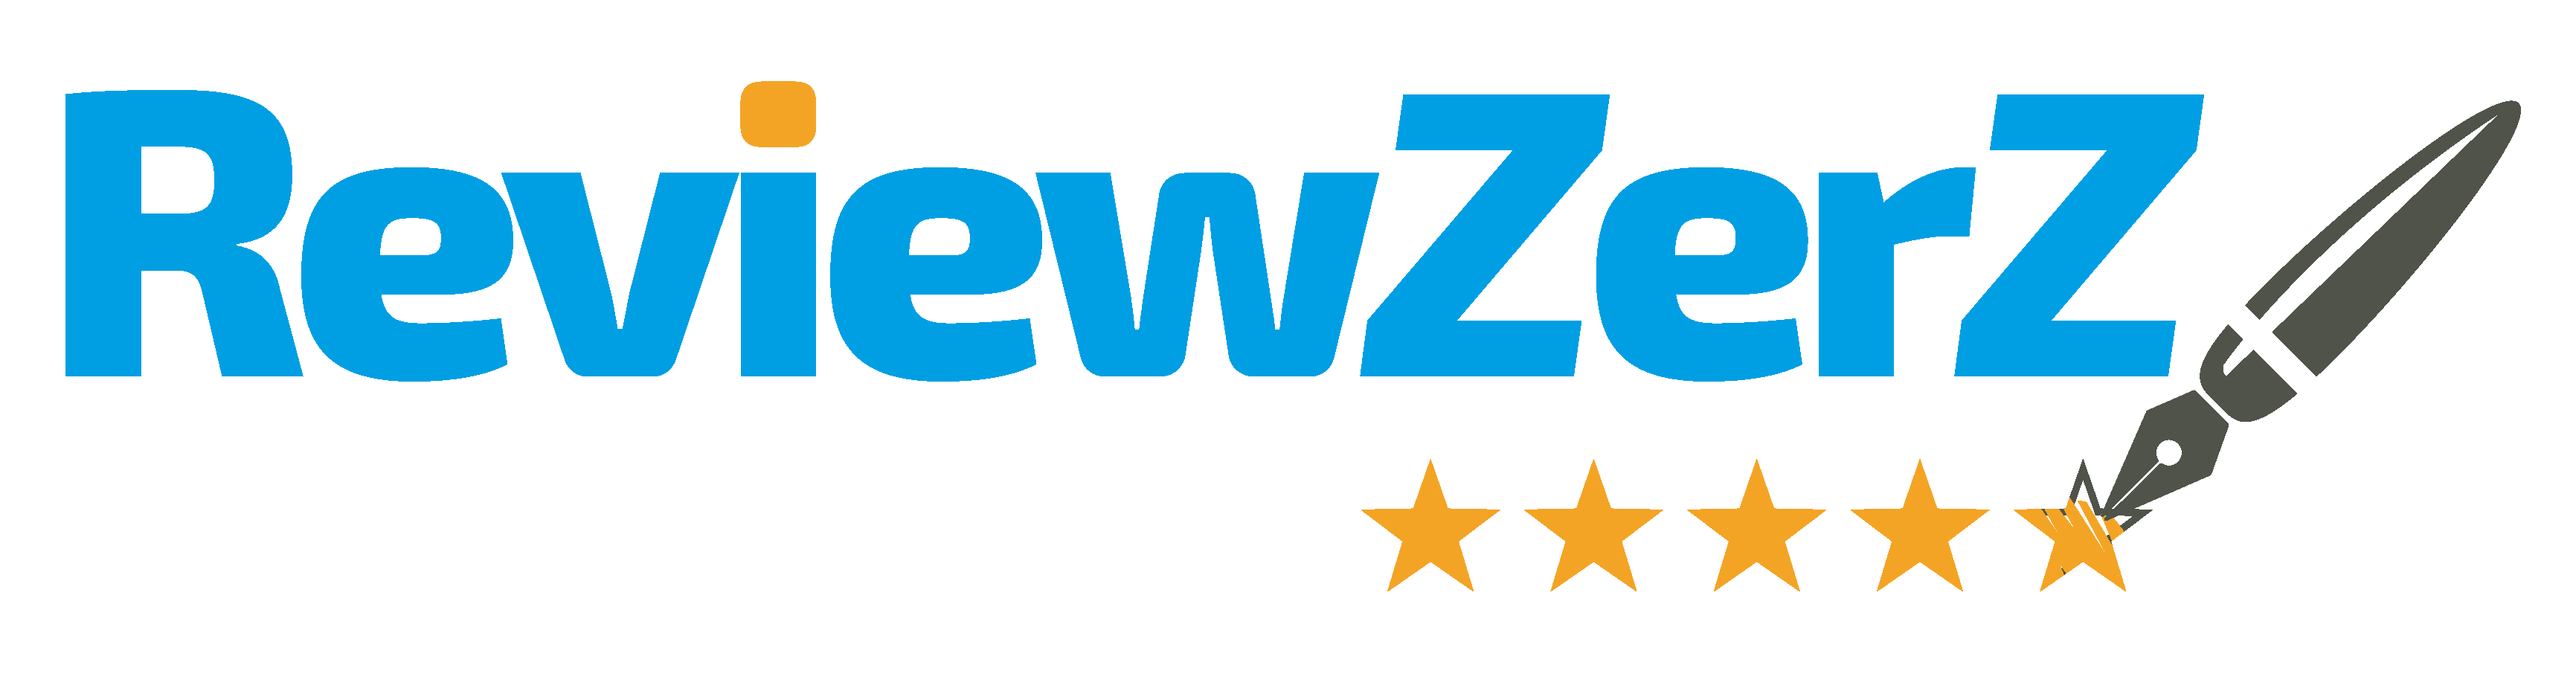 Reviewzerz.com